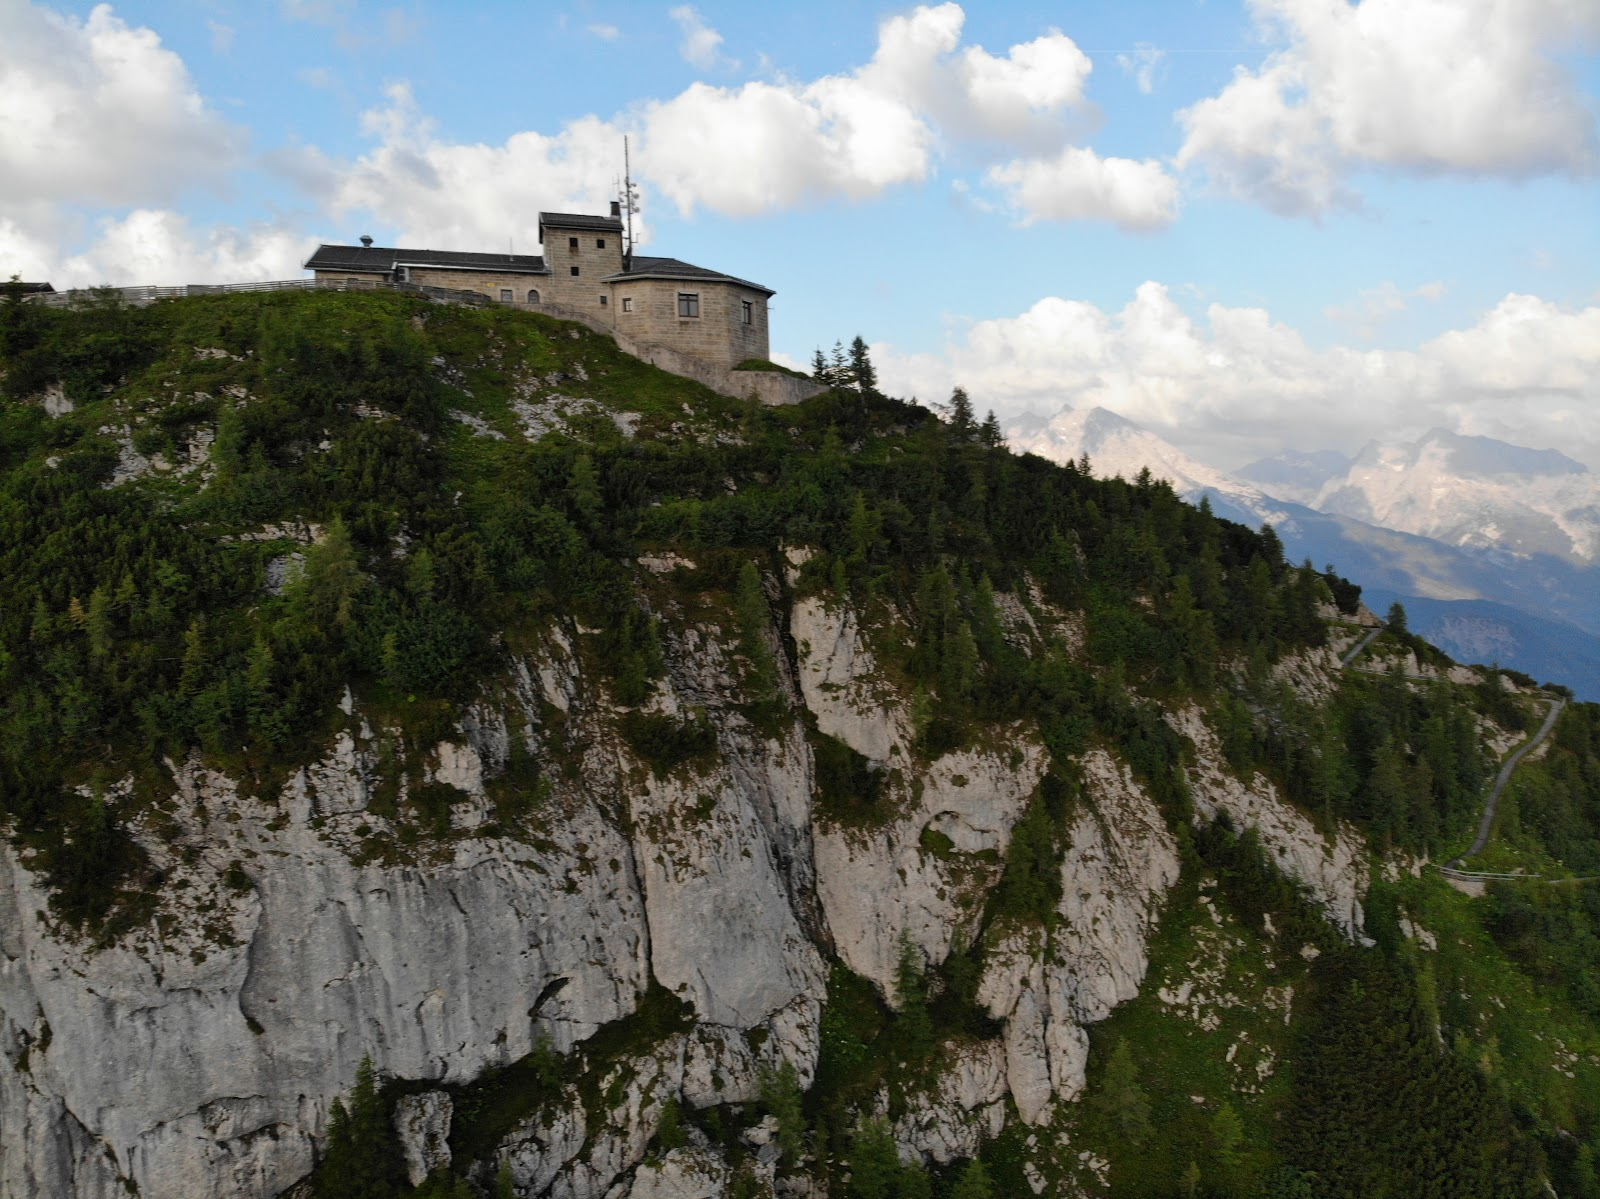 Cycling Kehlsteinhaus - Eagles Nest - Aerial Drone Photo